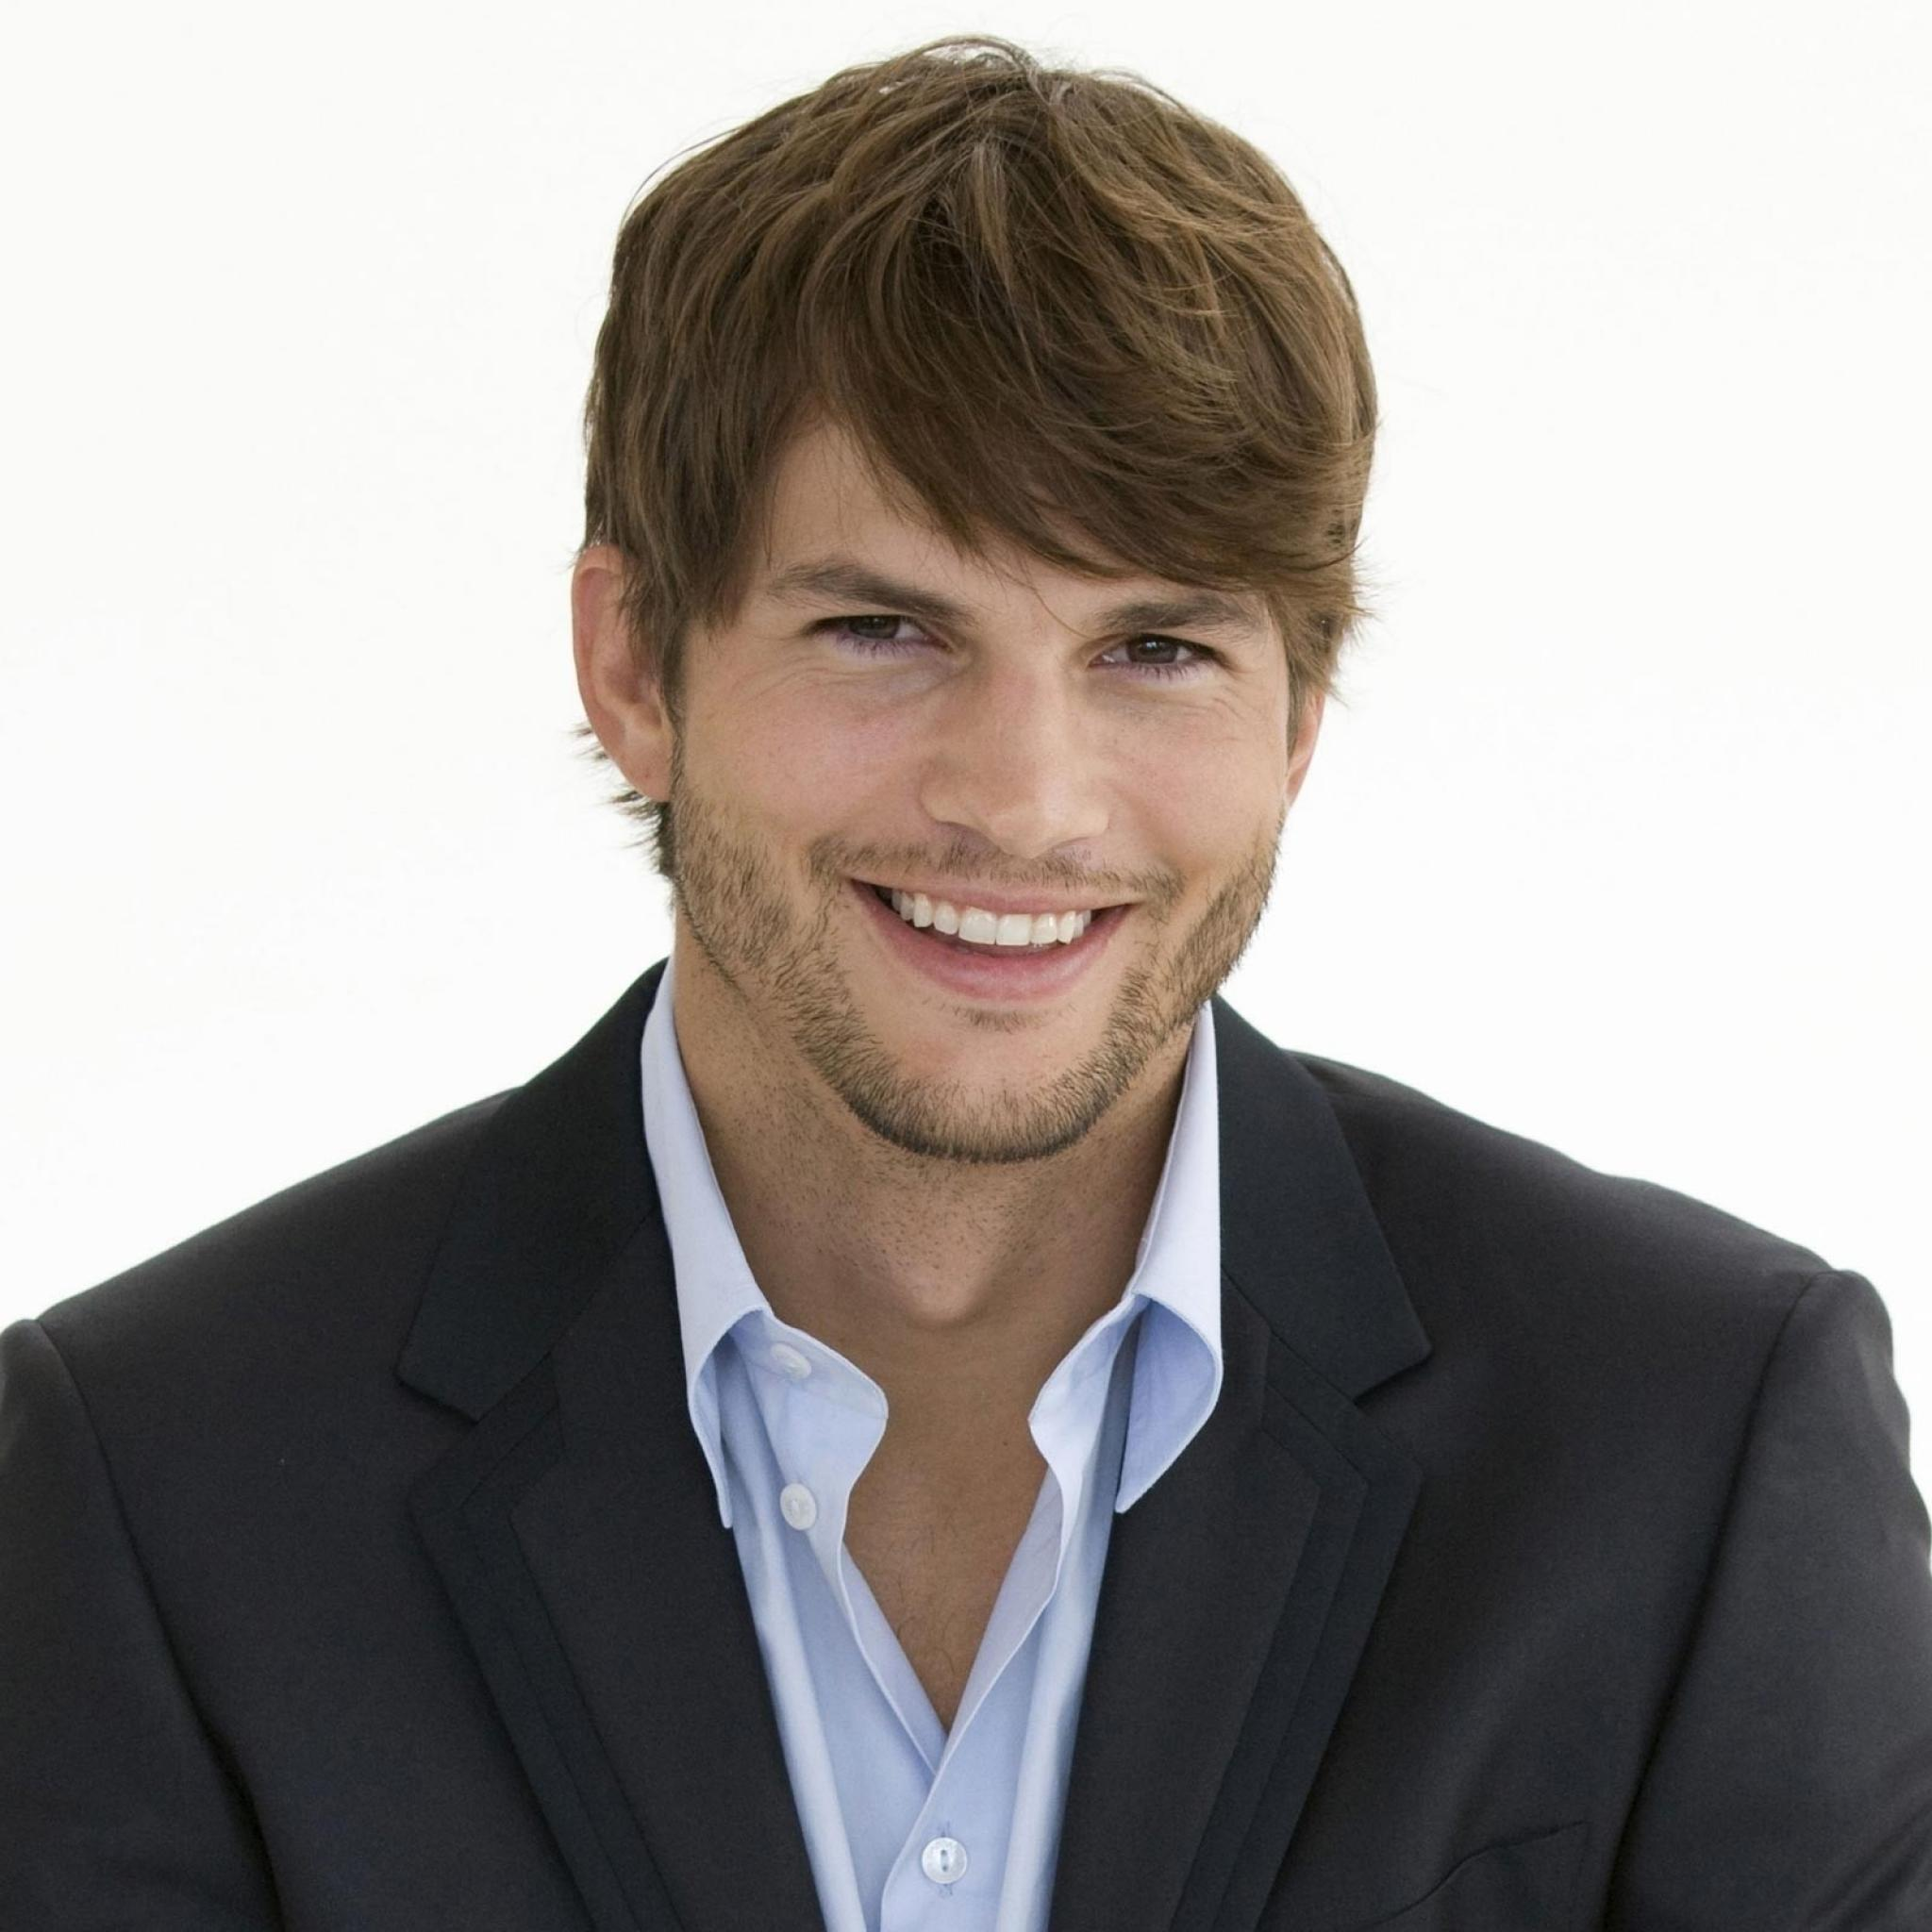 Take Over Ashton Kutcher sAshton Kutcher